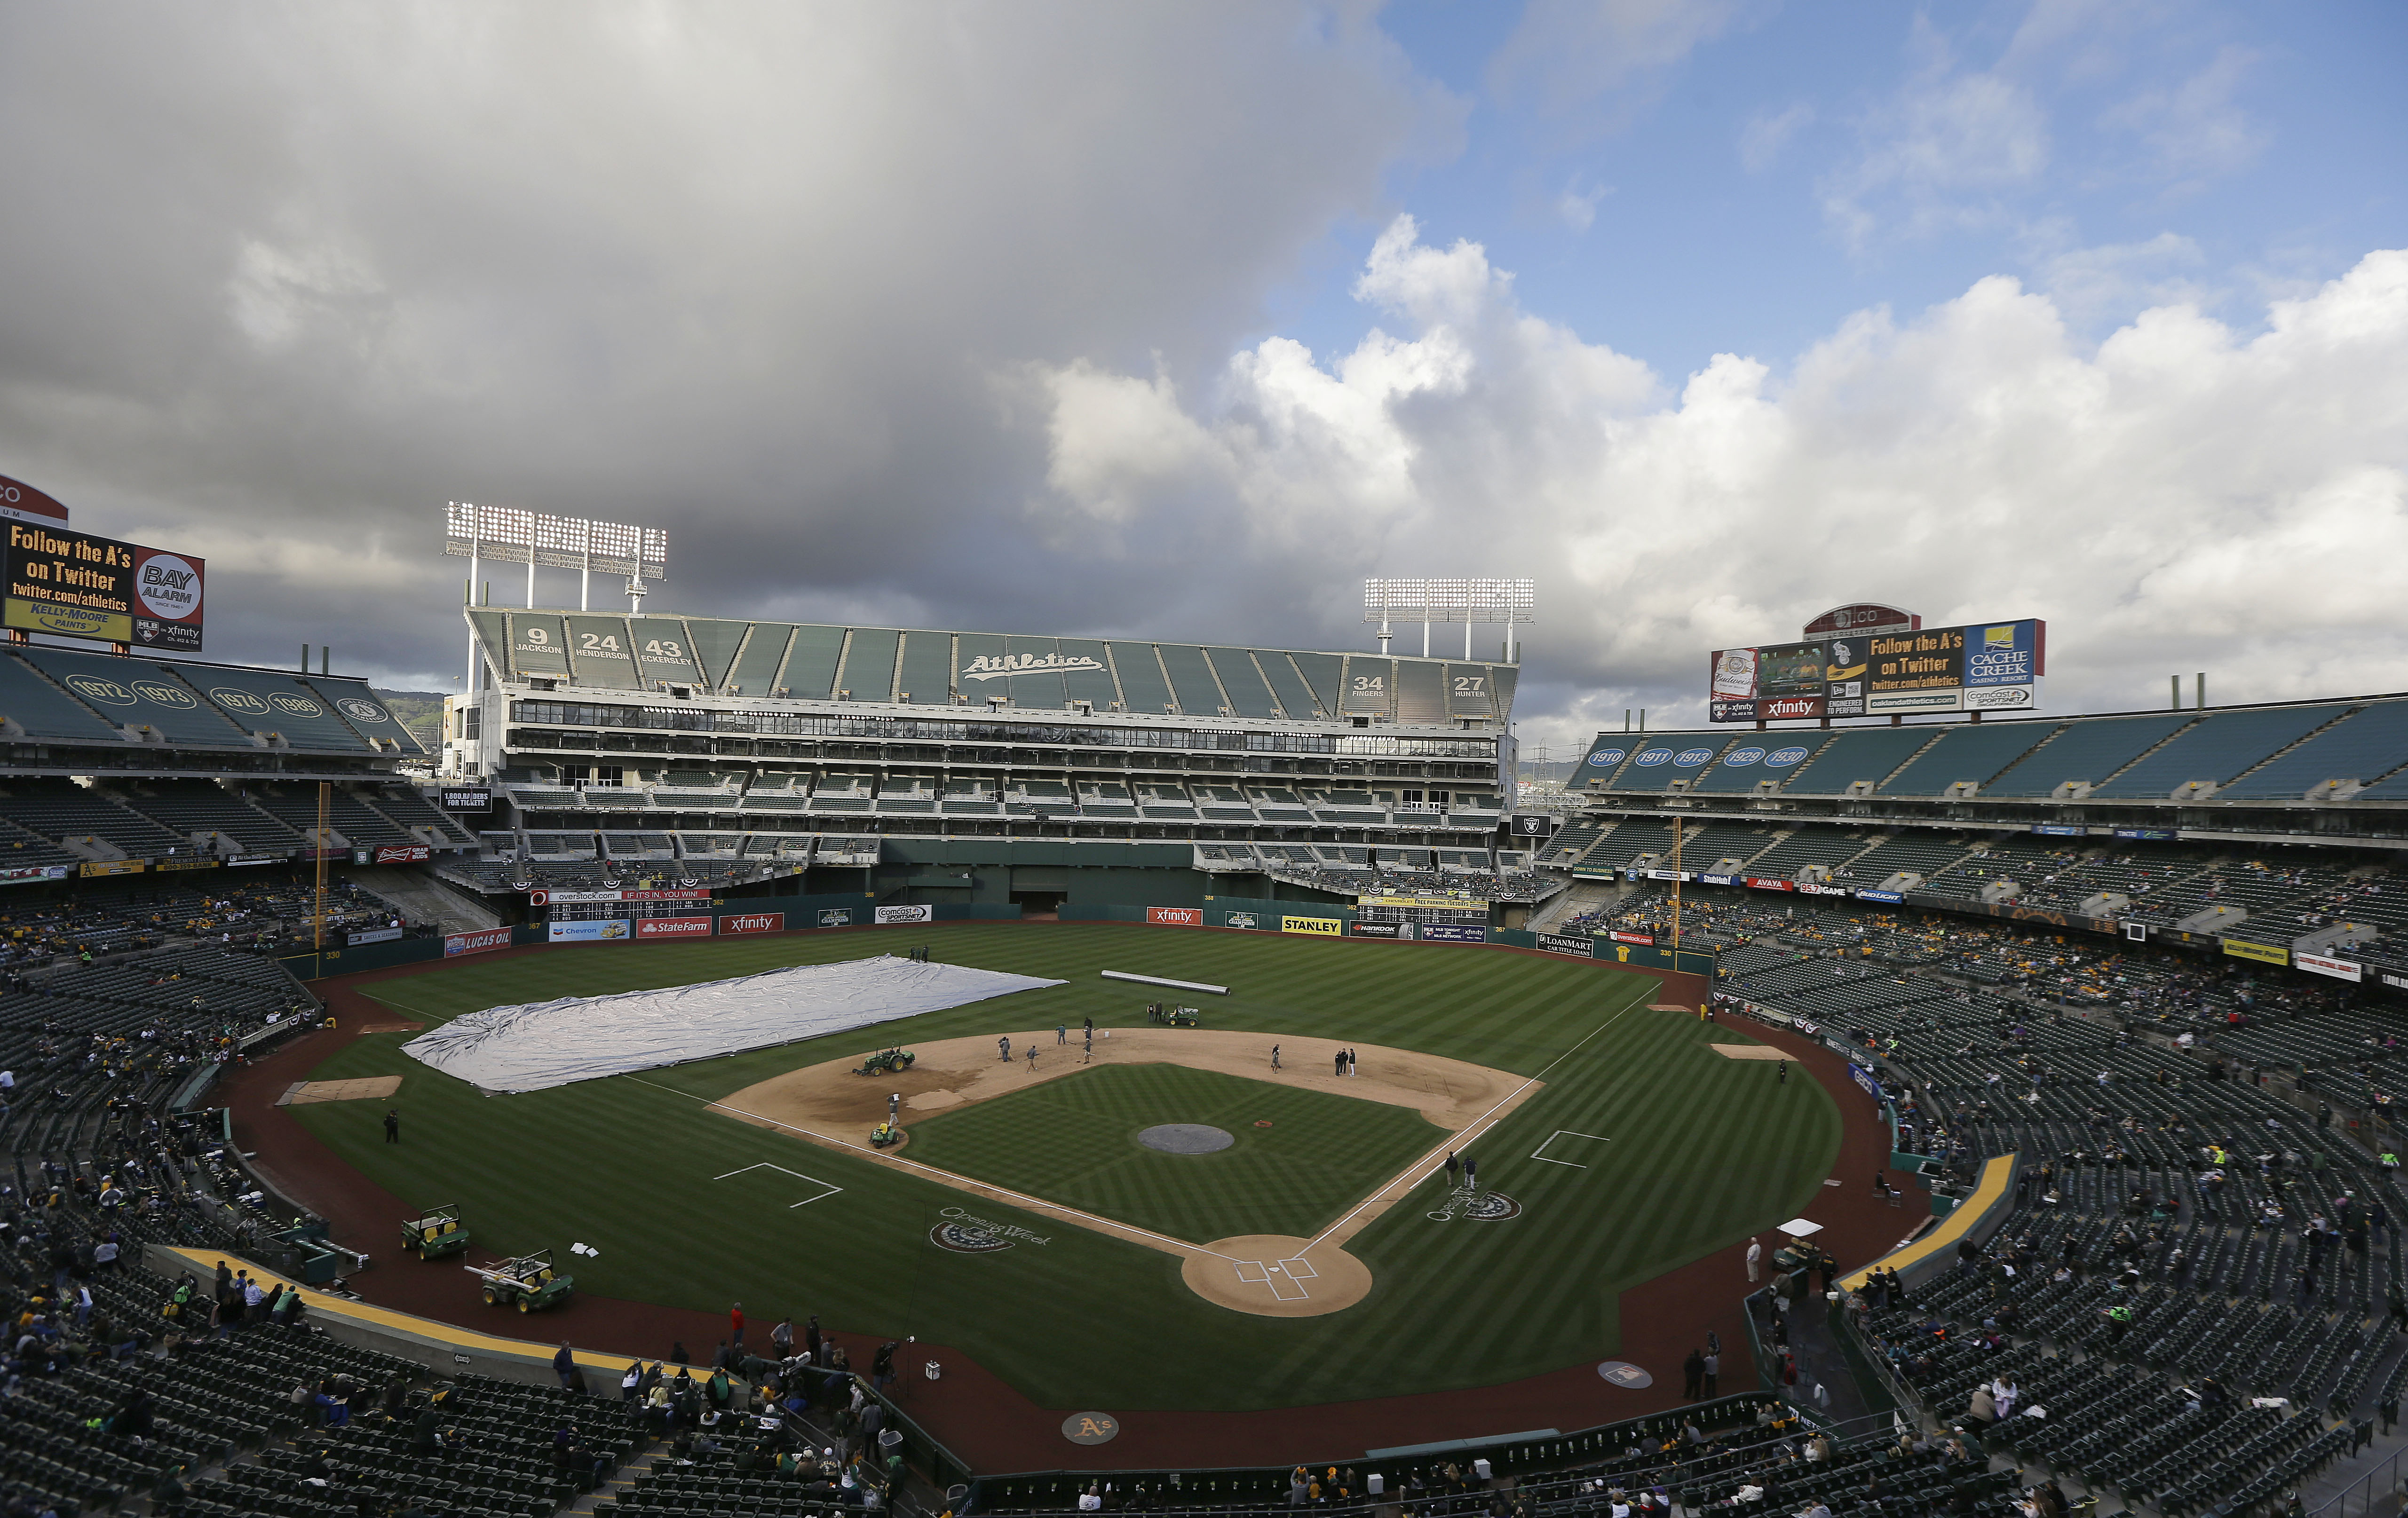 Members of the grounds crew work on the infield at O.co Coliseum before a baseball game between the Oakland Athletics and the Seattle Mariners in Oakland, Calif., Friday, April 4, 2014. The game has been delayed for weather related conditions to the infie